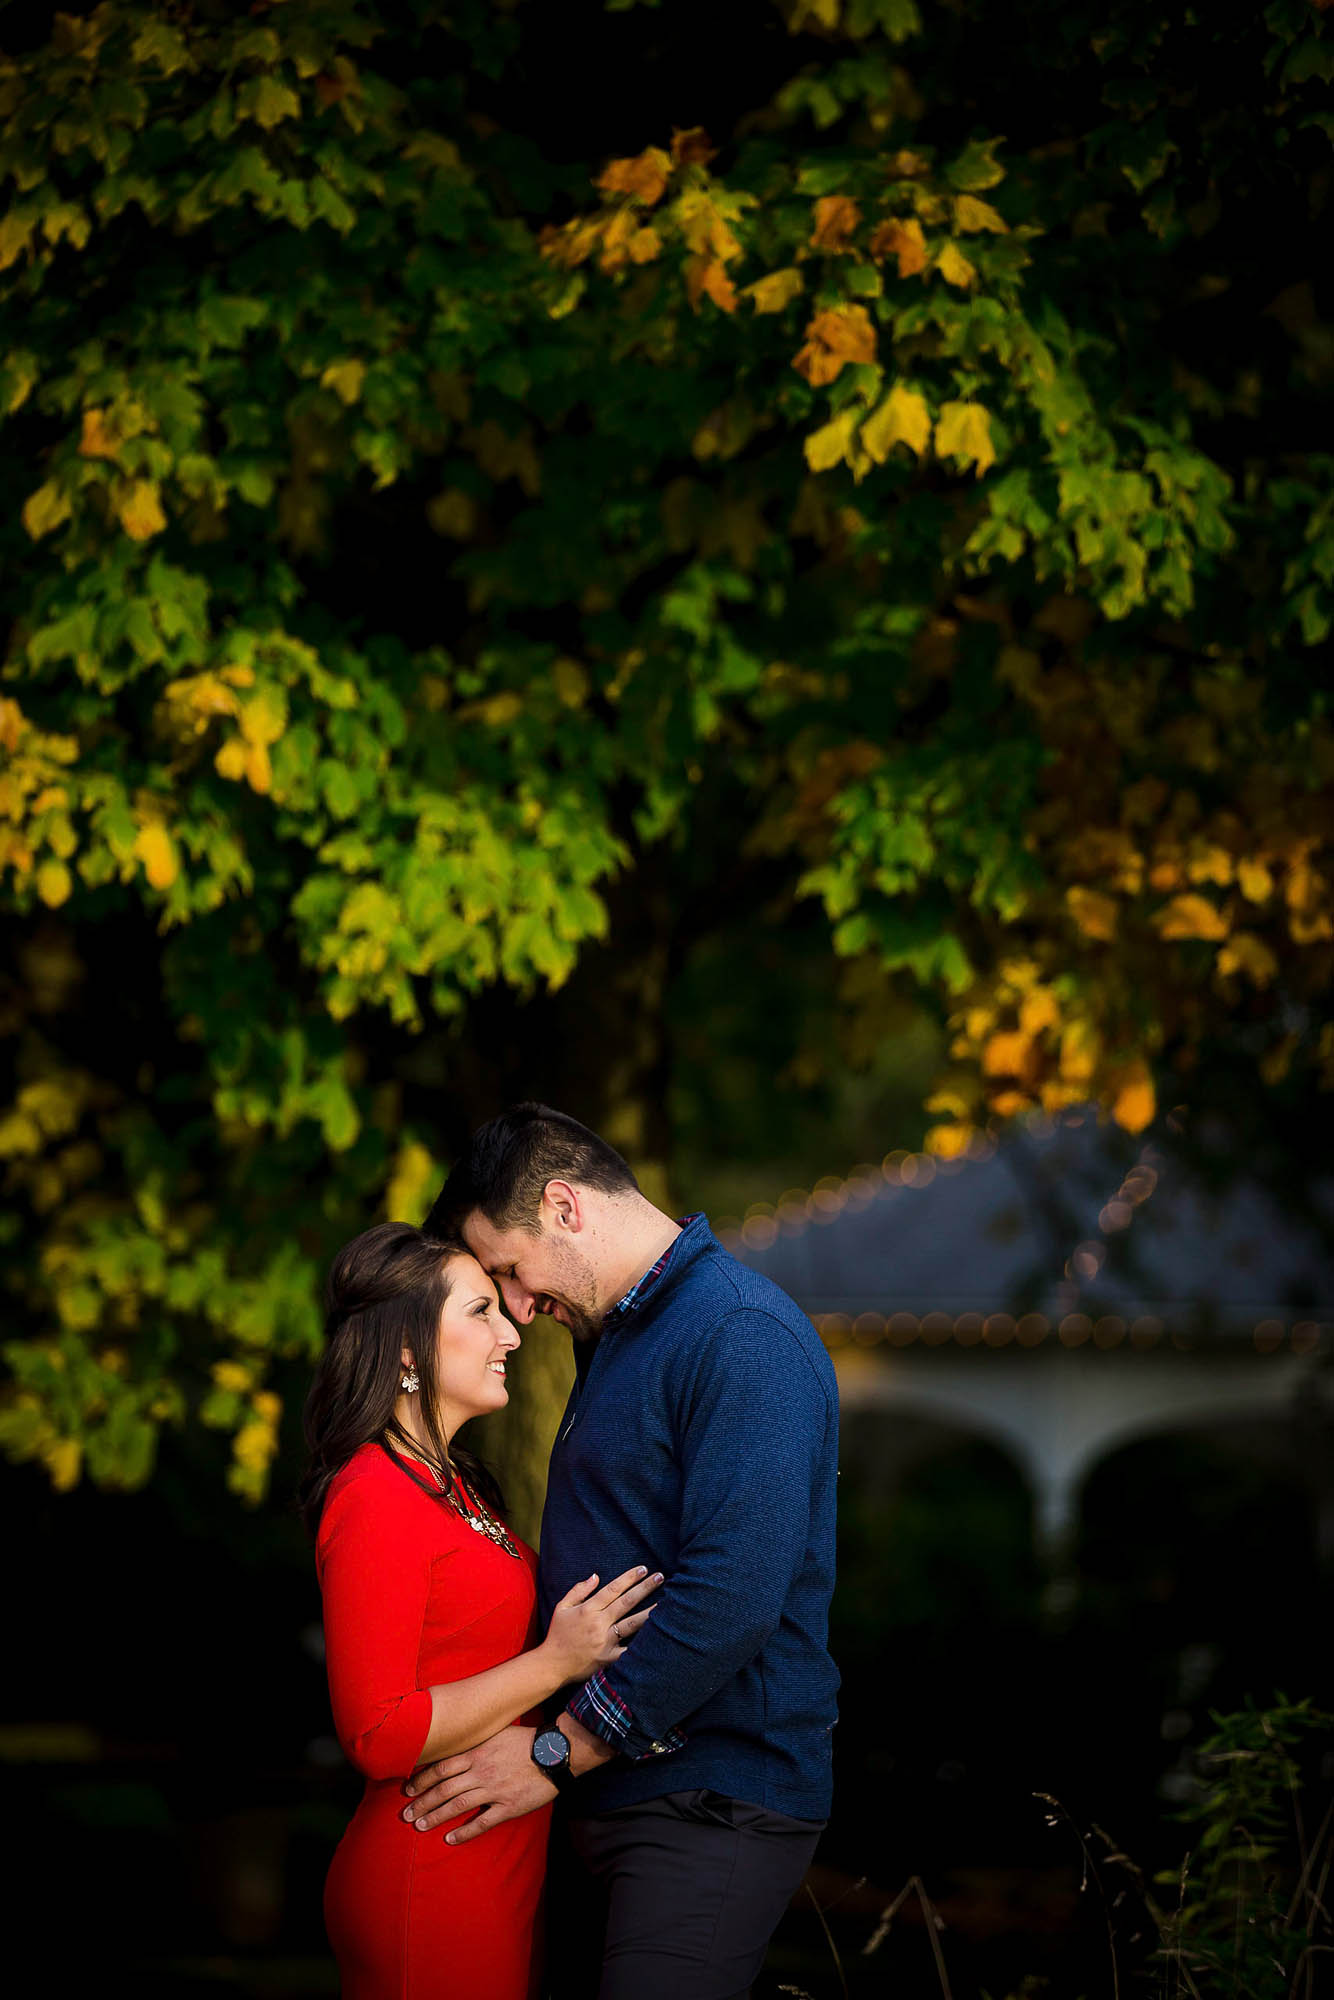 A picture of an engaged couple from the waist up standing with their foreheads together where the woman is in red and the man in dark blue and they are leaning against a stone wall with green leaves behind them in New Philadelphia, Ohio.